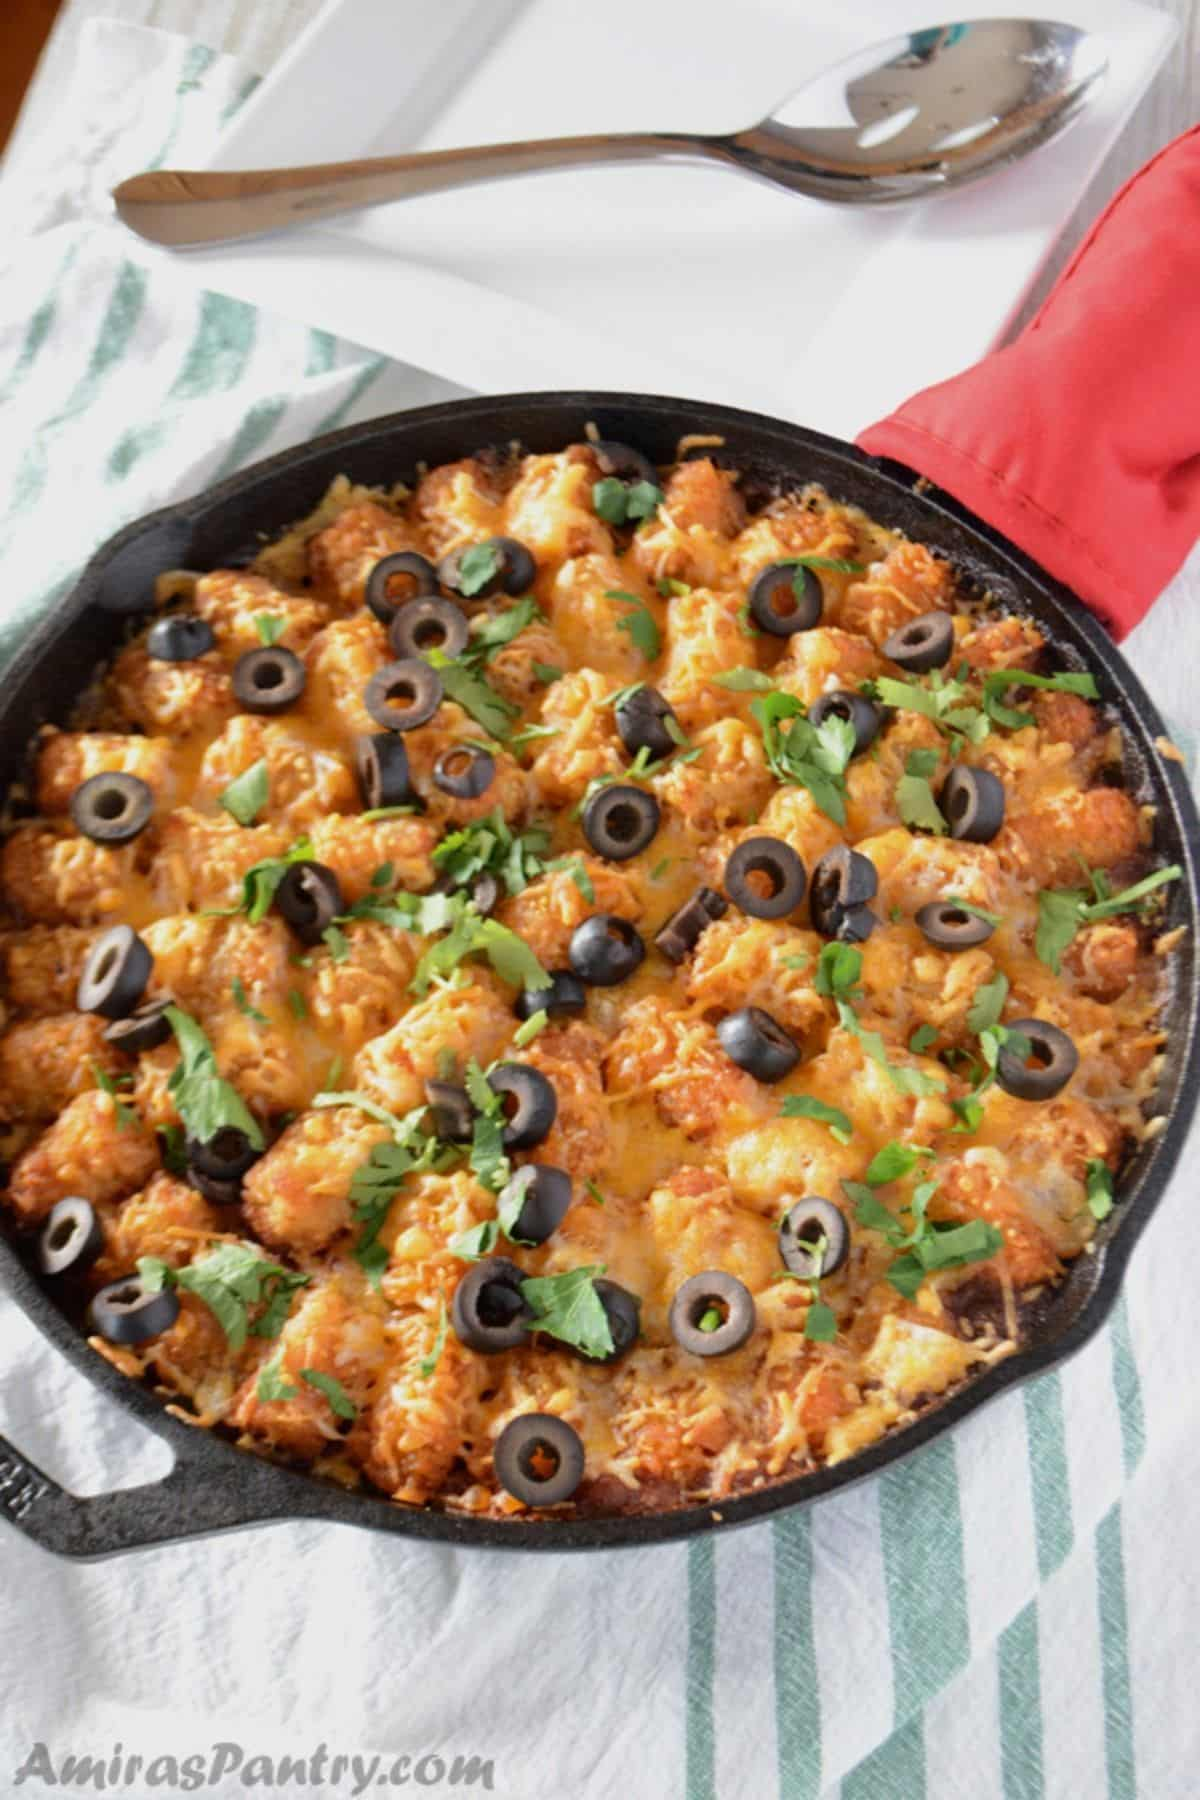 A pan with Tater tots, cheese and olives